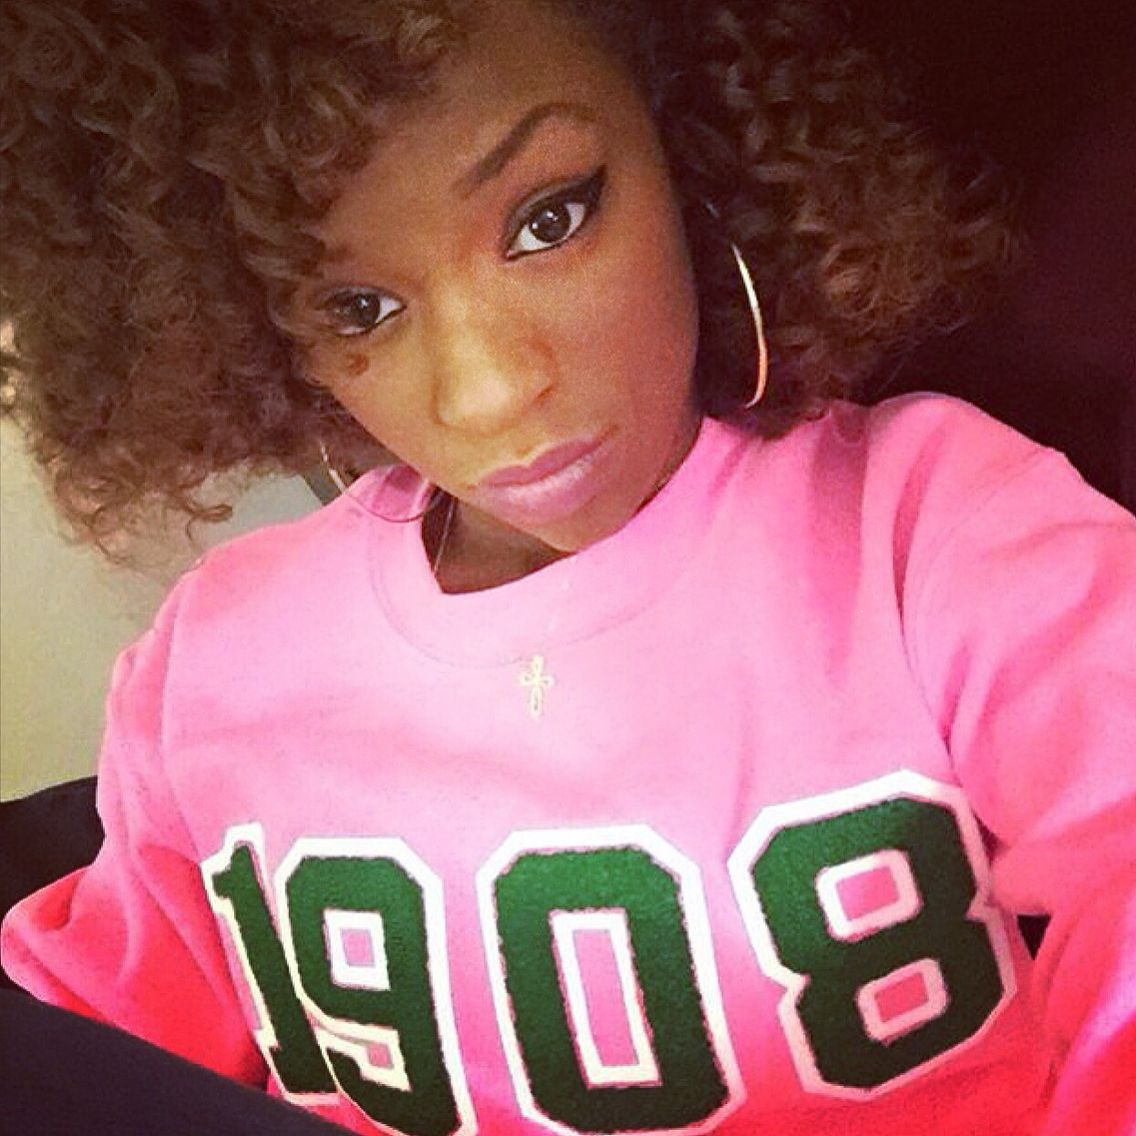 Alpha Kappa Alpha 1908 sweatshirt! | Fashionably Greek | Pinterest